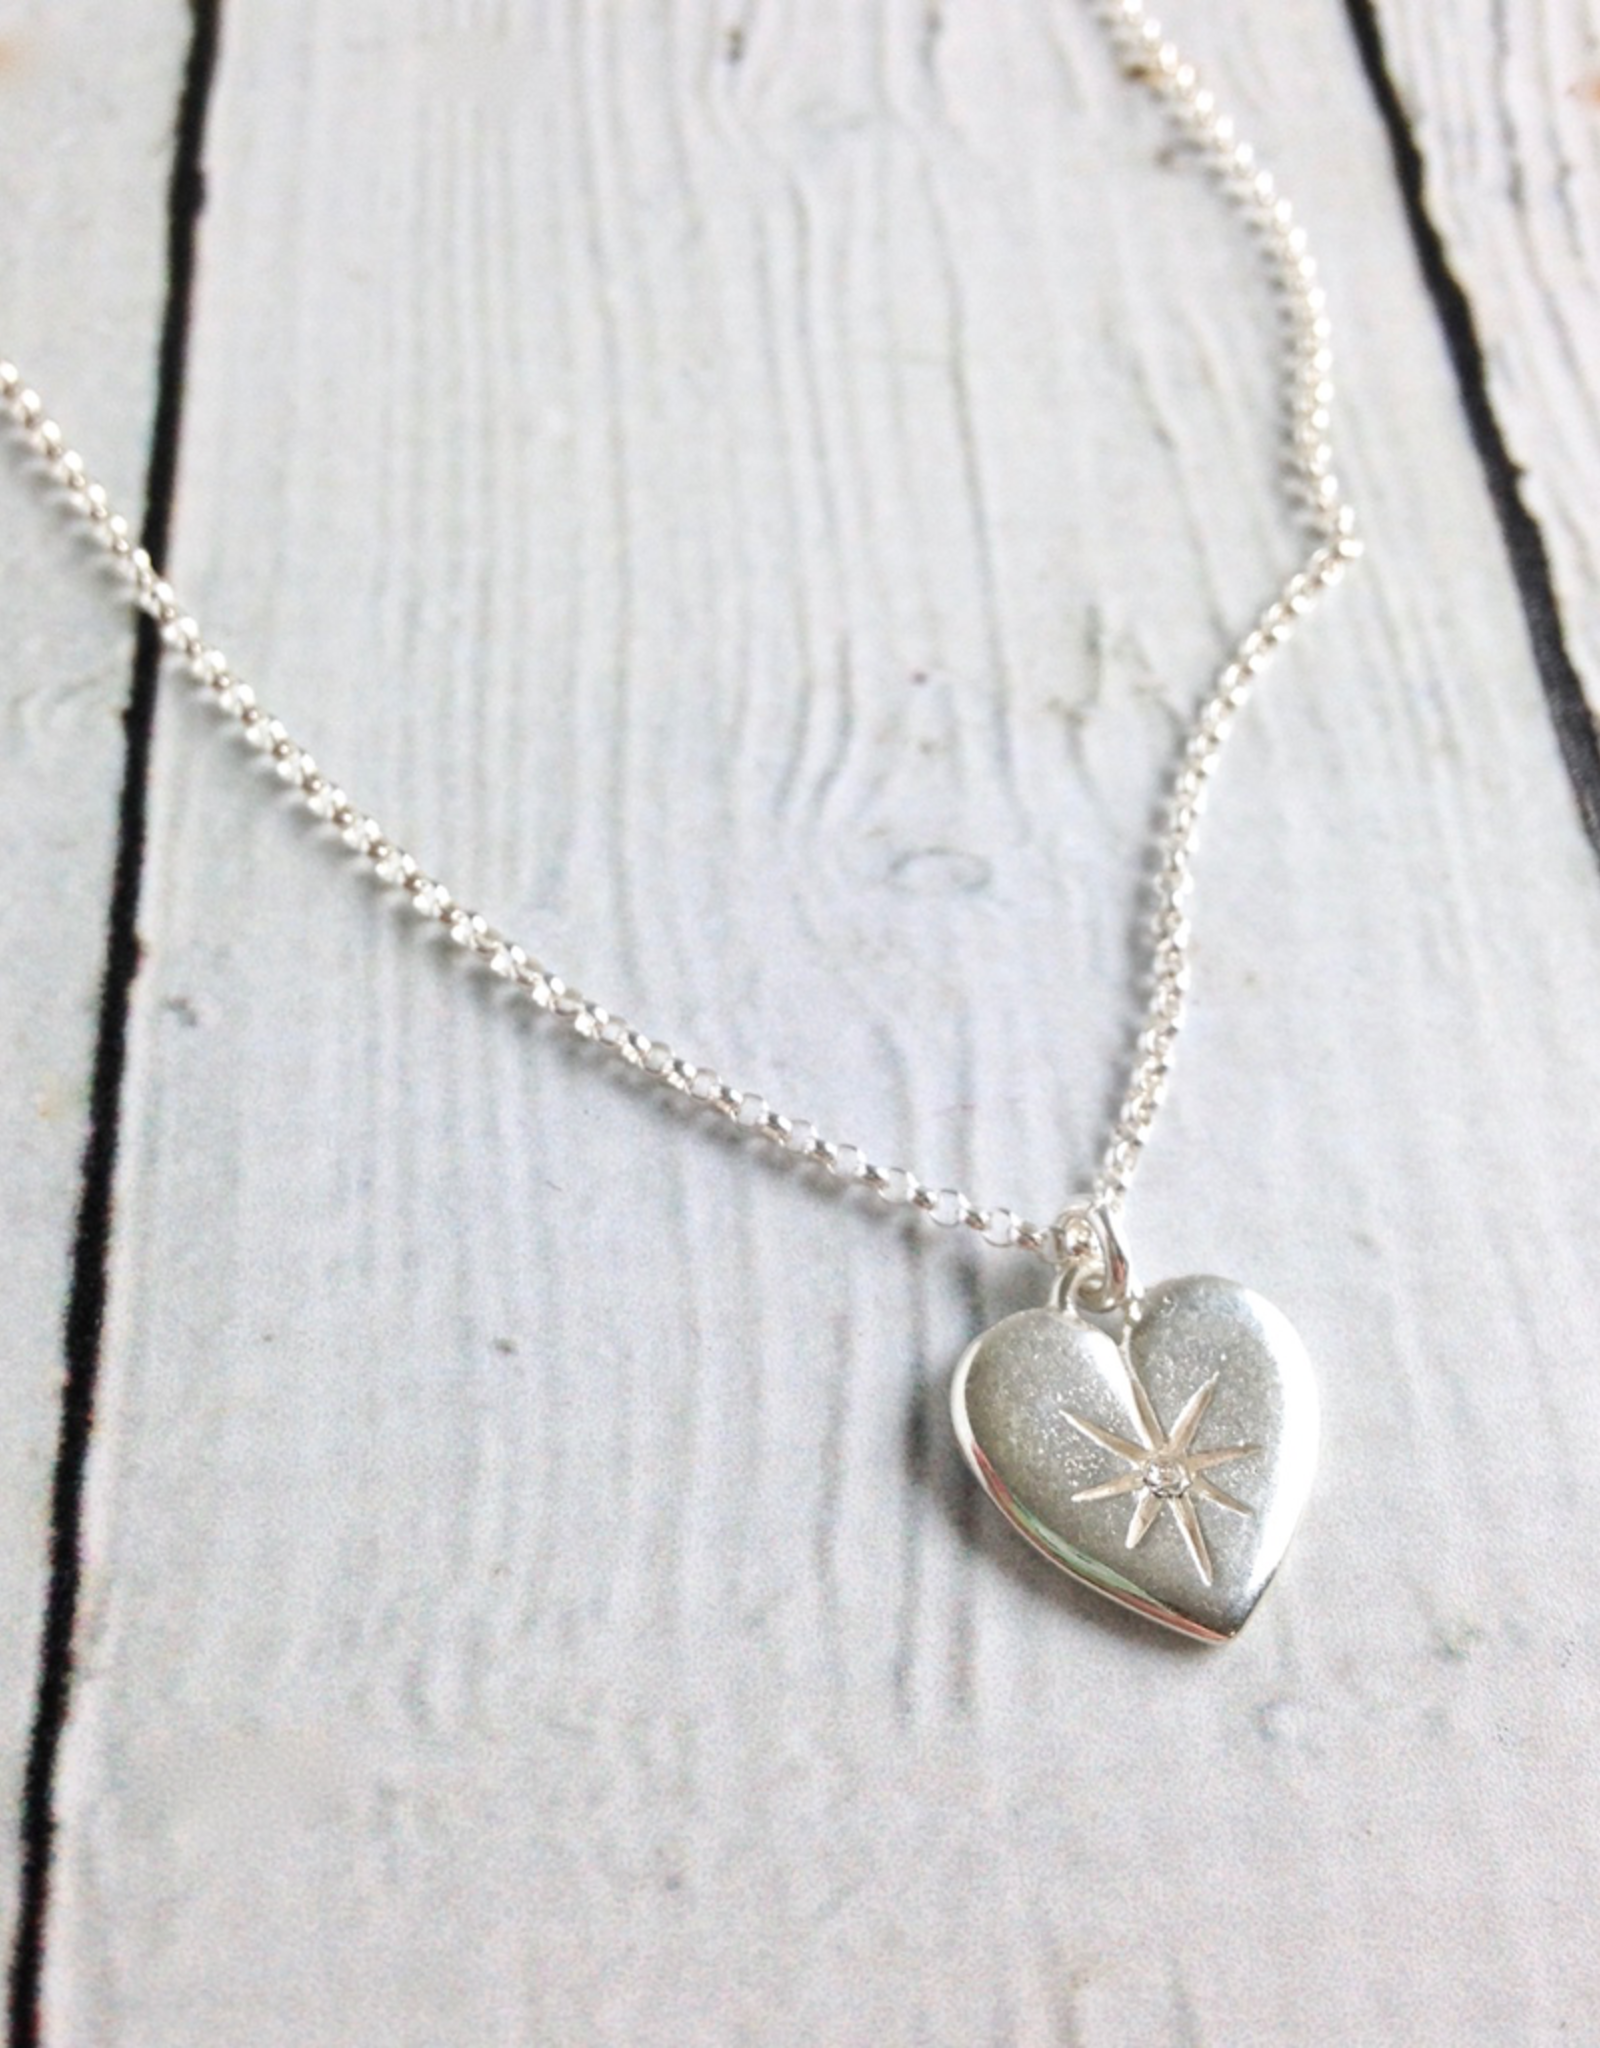 Sterling Silver Wonder-ful Woman Necklace, Heart Shaped pendant with cz on Silver chain